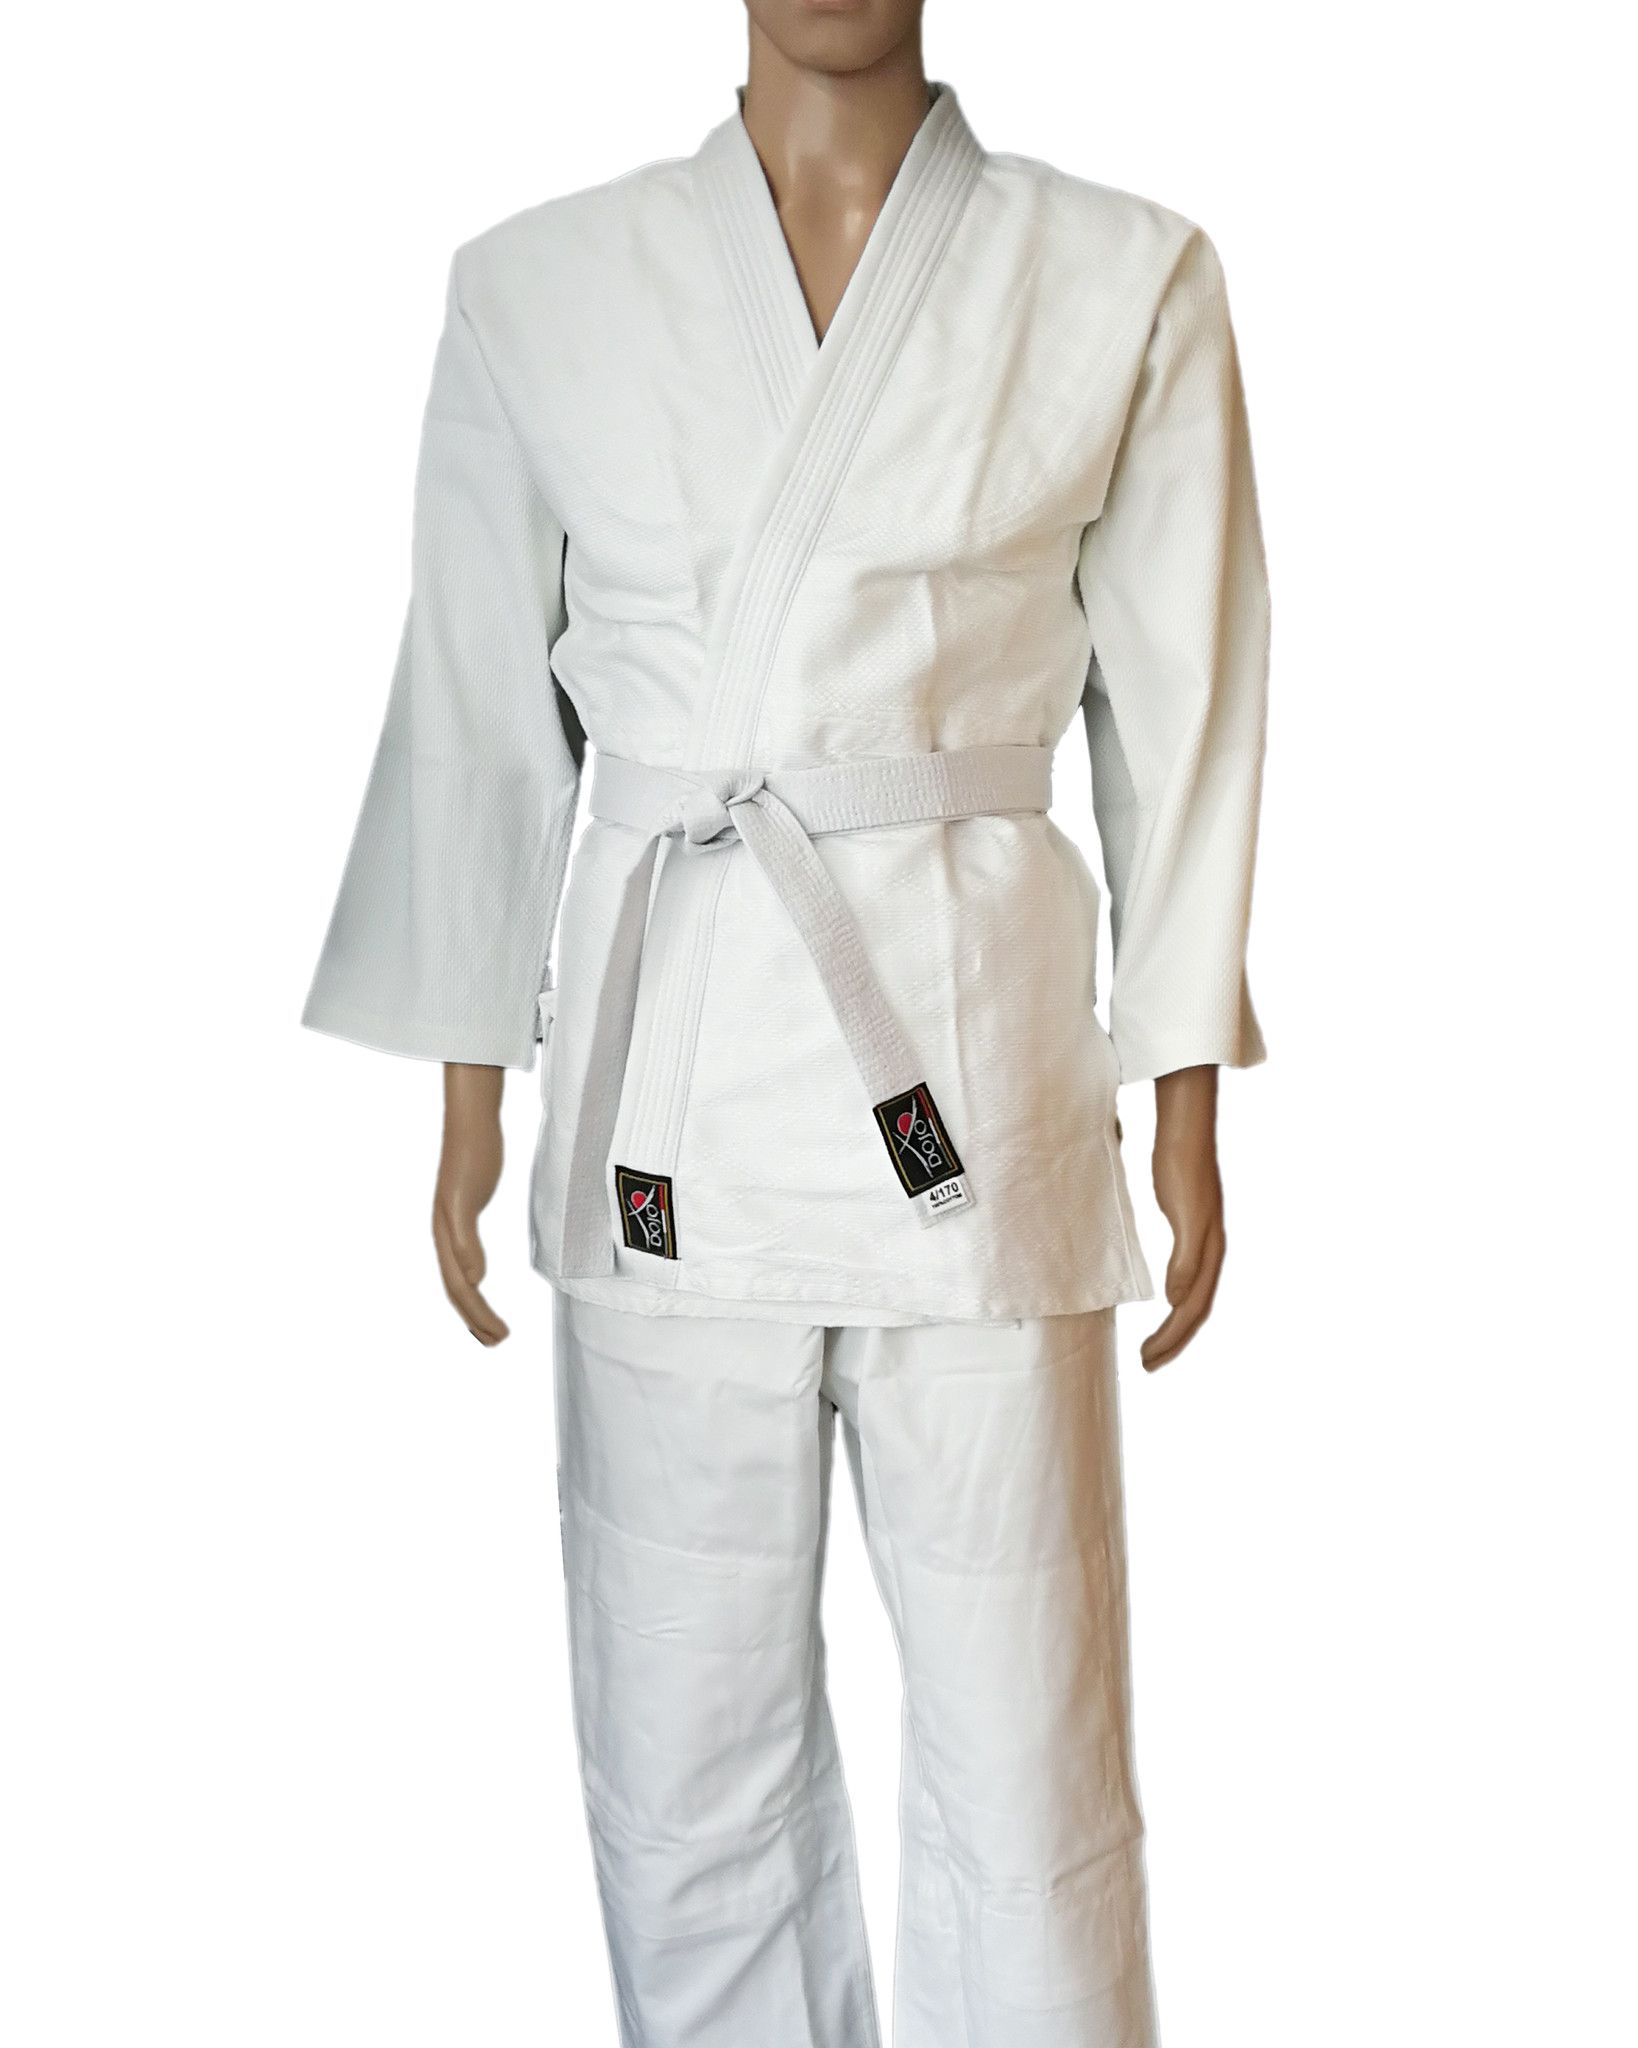 Dojo - Judogi Uniforme per Judo Training